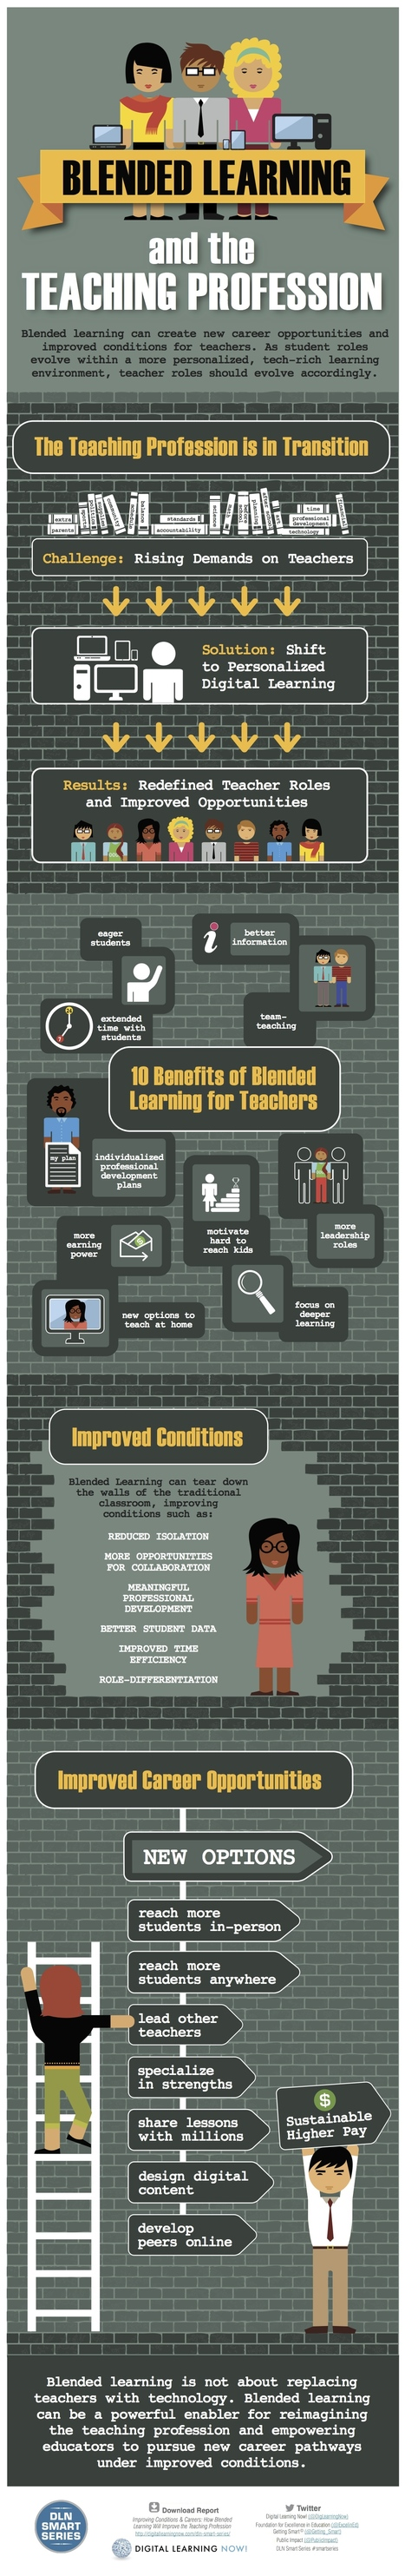 Blended Learning & The Teaching Profession [Infographic] | Innovatieve eLearning | Scoop.it